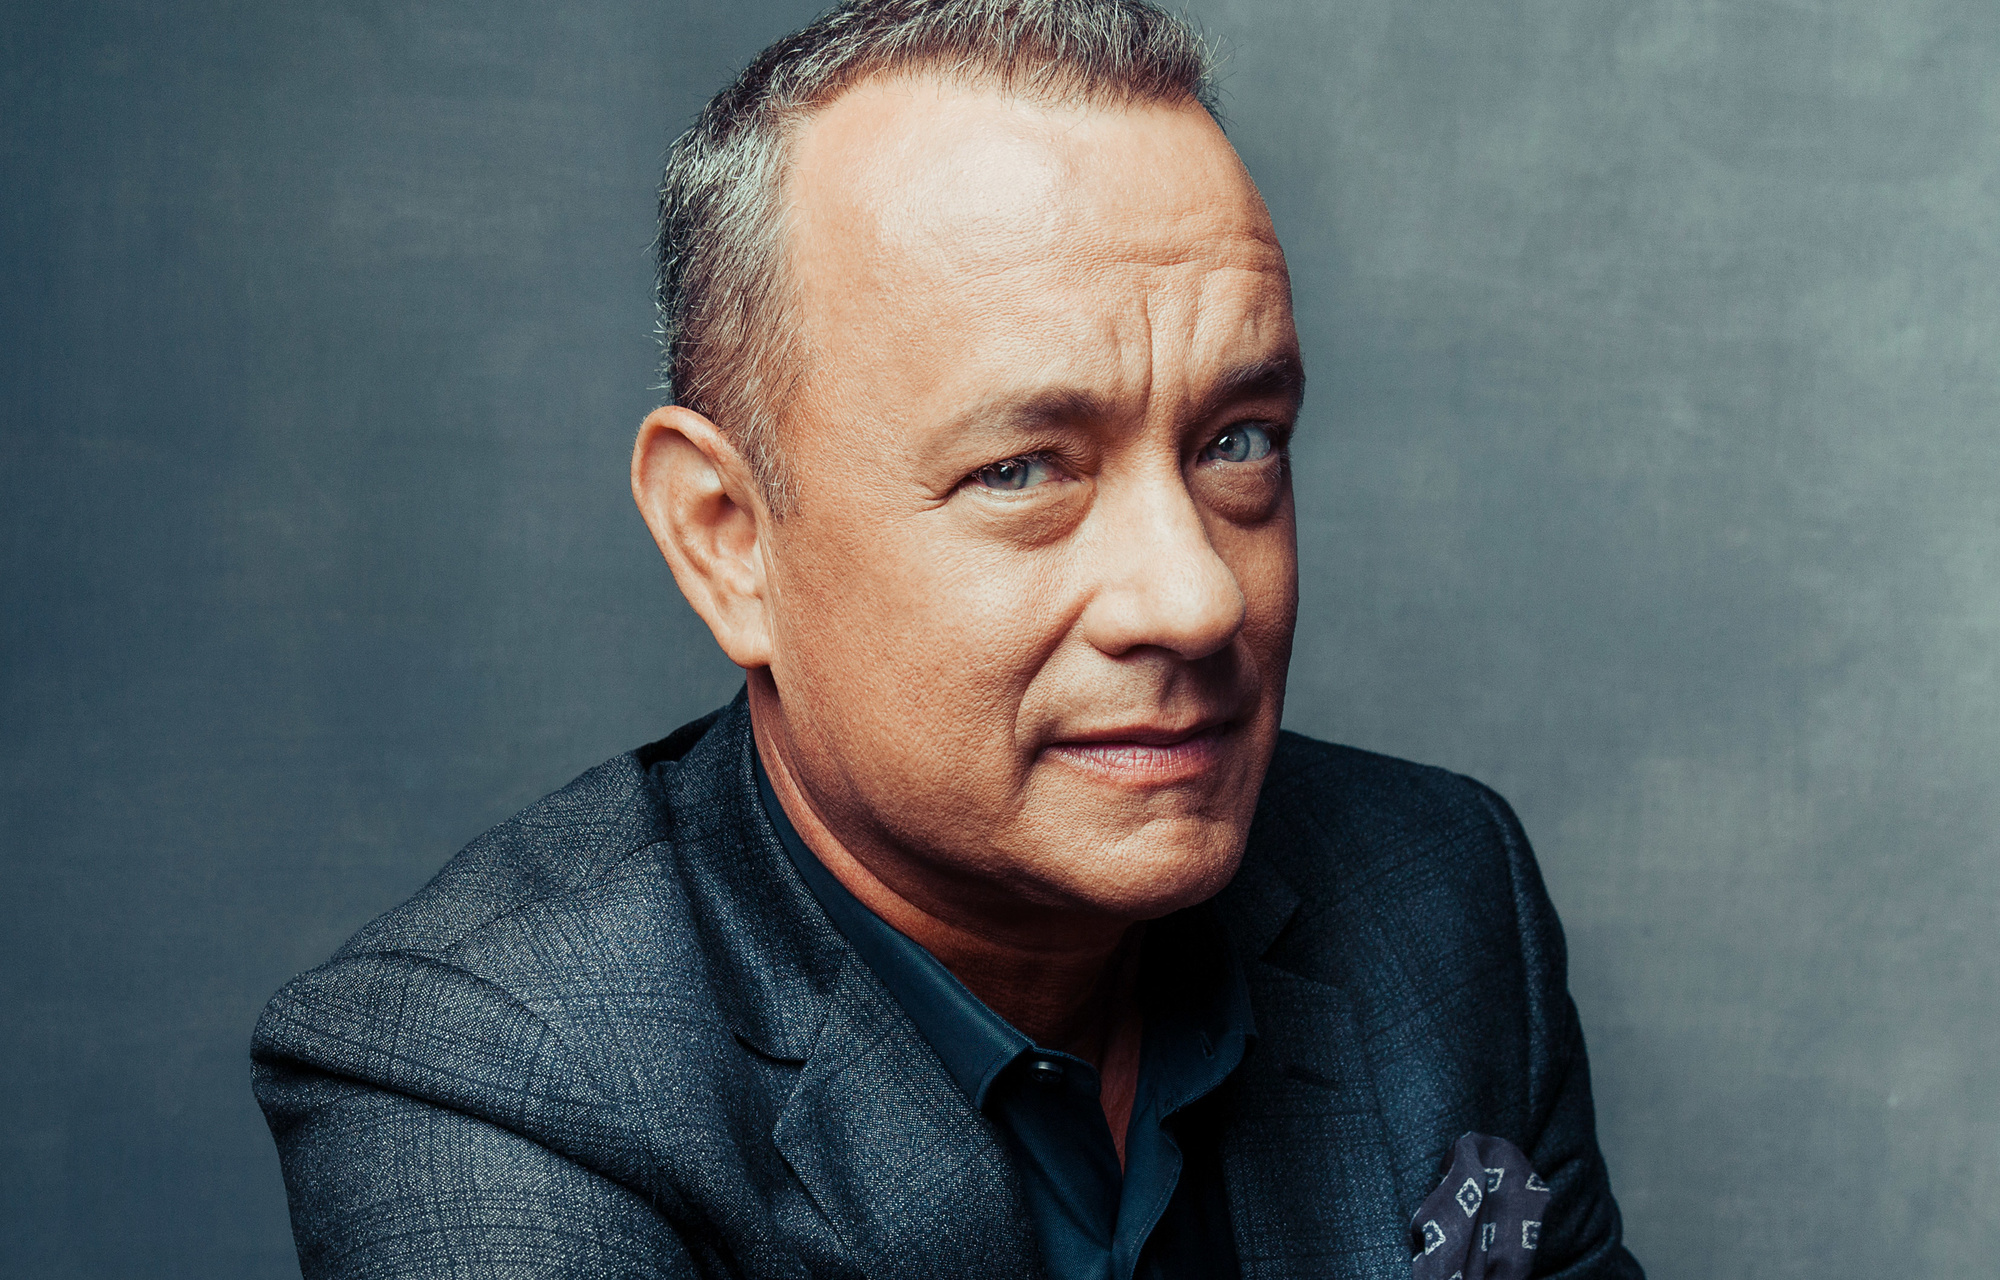 Tom Hanks net worth